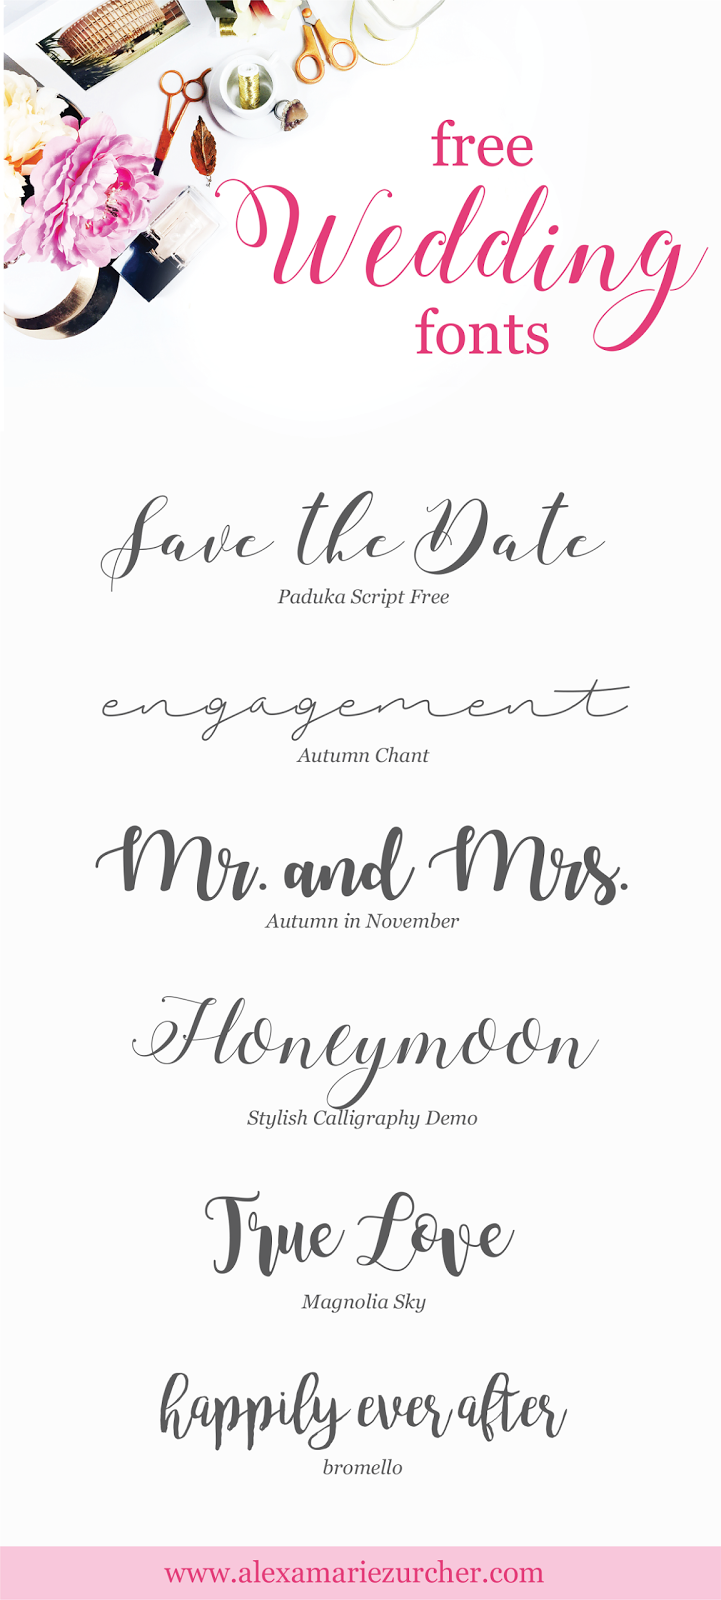 Free Wedding Fonts! | Zurcher Co | He + I = Party of 5